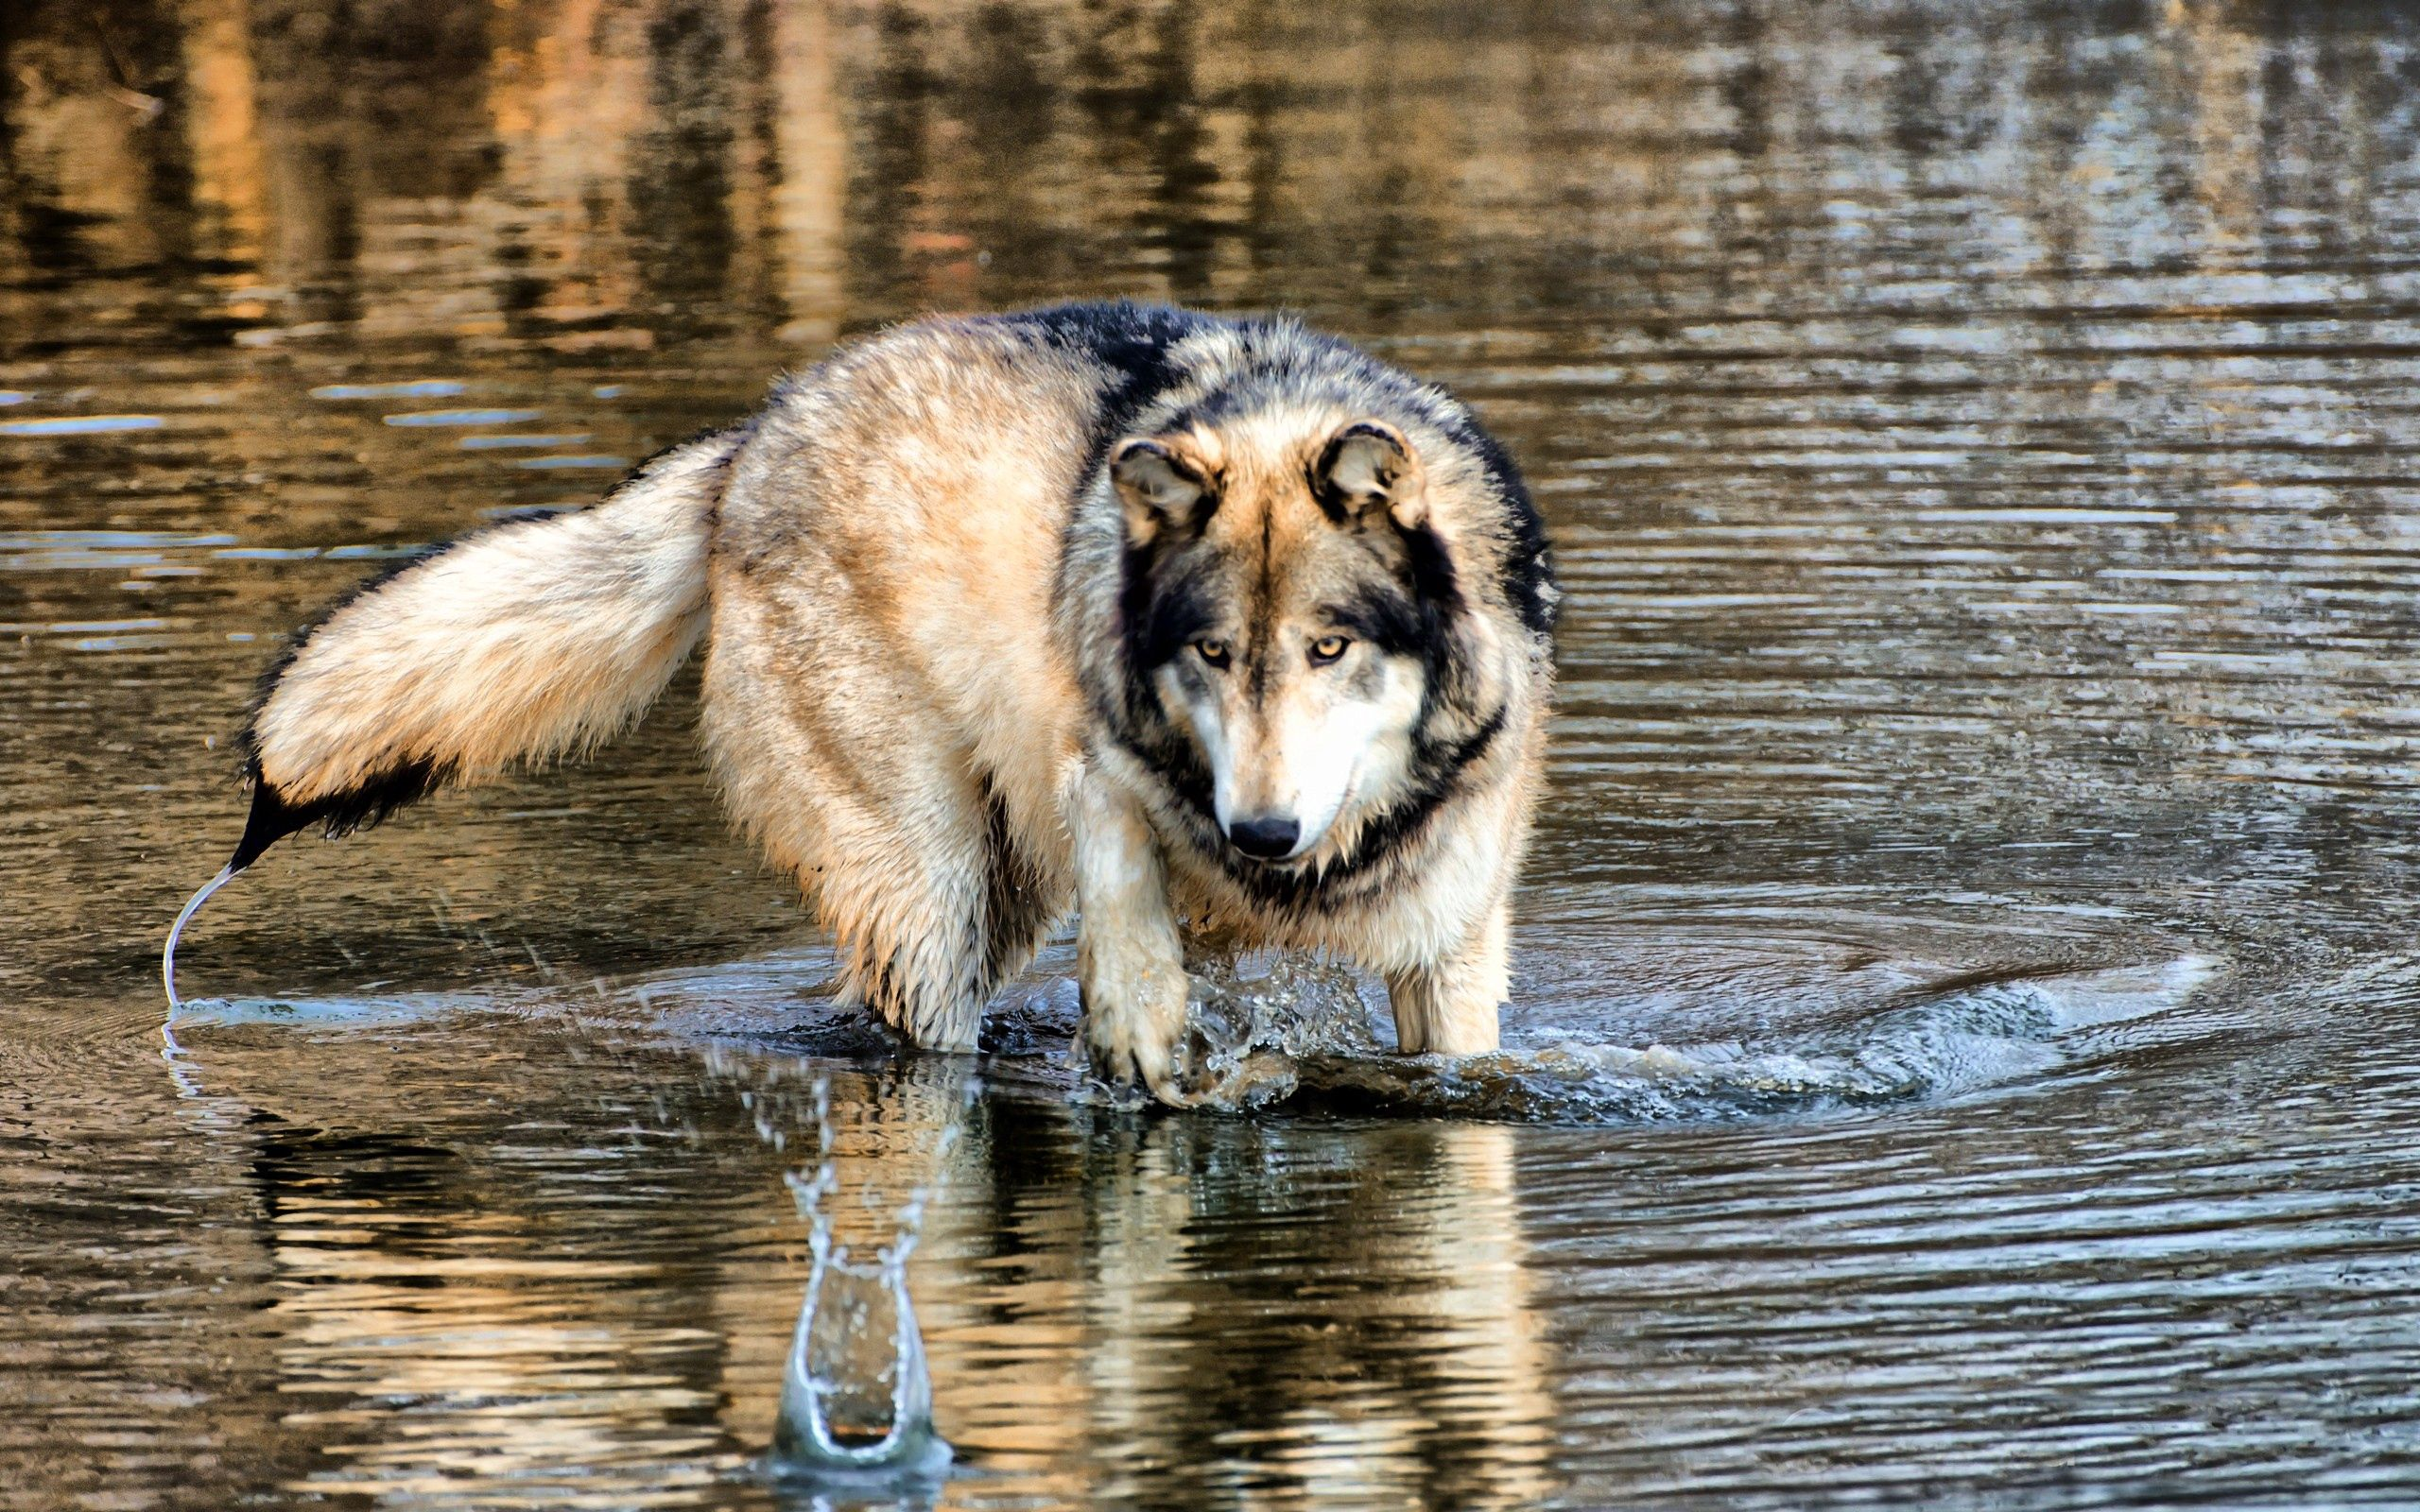 140457 download wallpaper Animals, Wolf, Water, Stroll, Hunting, Hunt, Predator screensavers and pictures for free